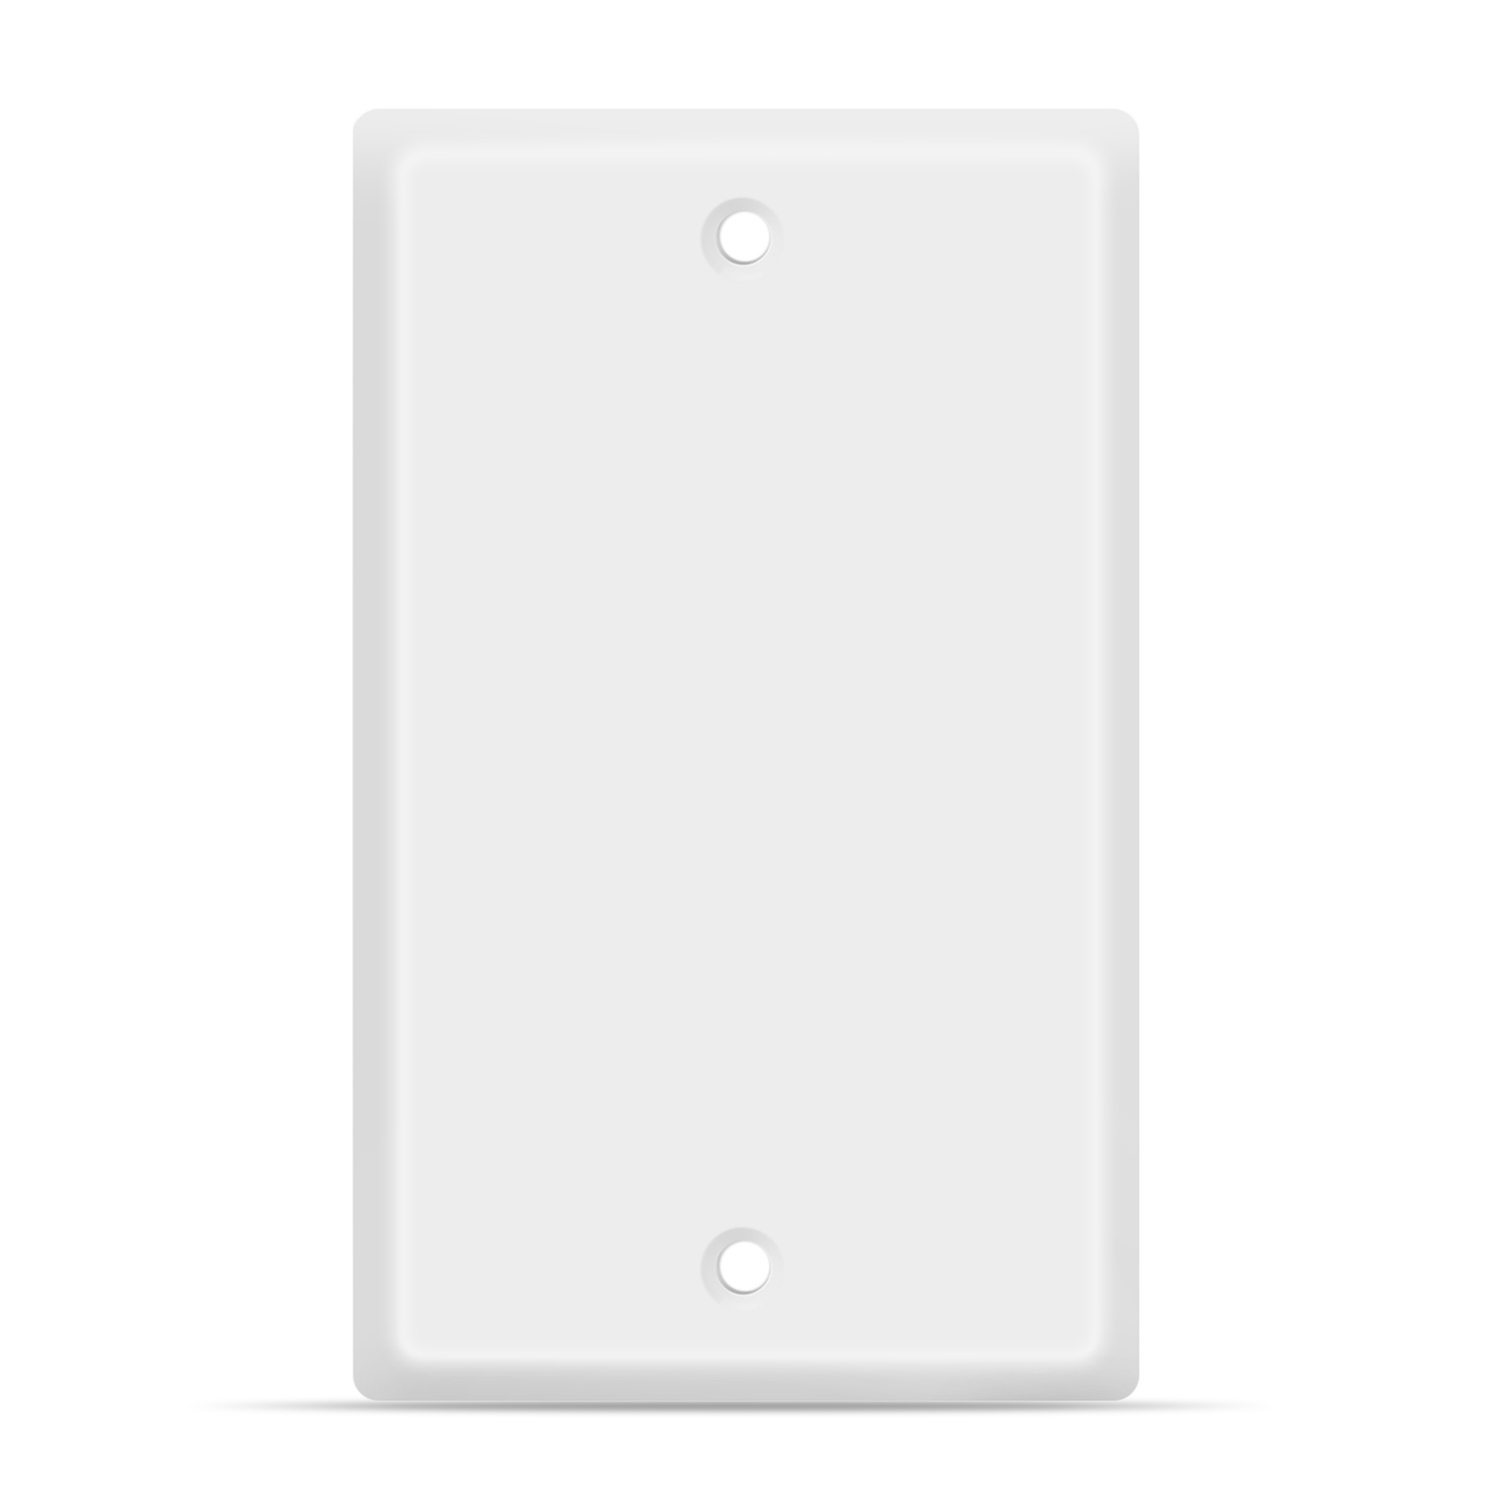 Blank Wall Plate Outlet Cover Blank Faceplate Socket Insert Jack